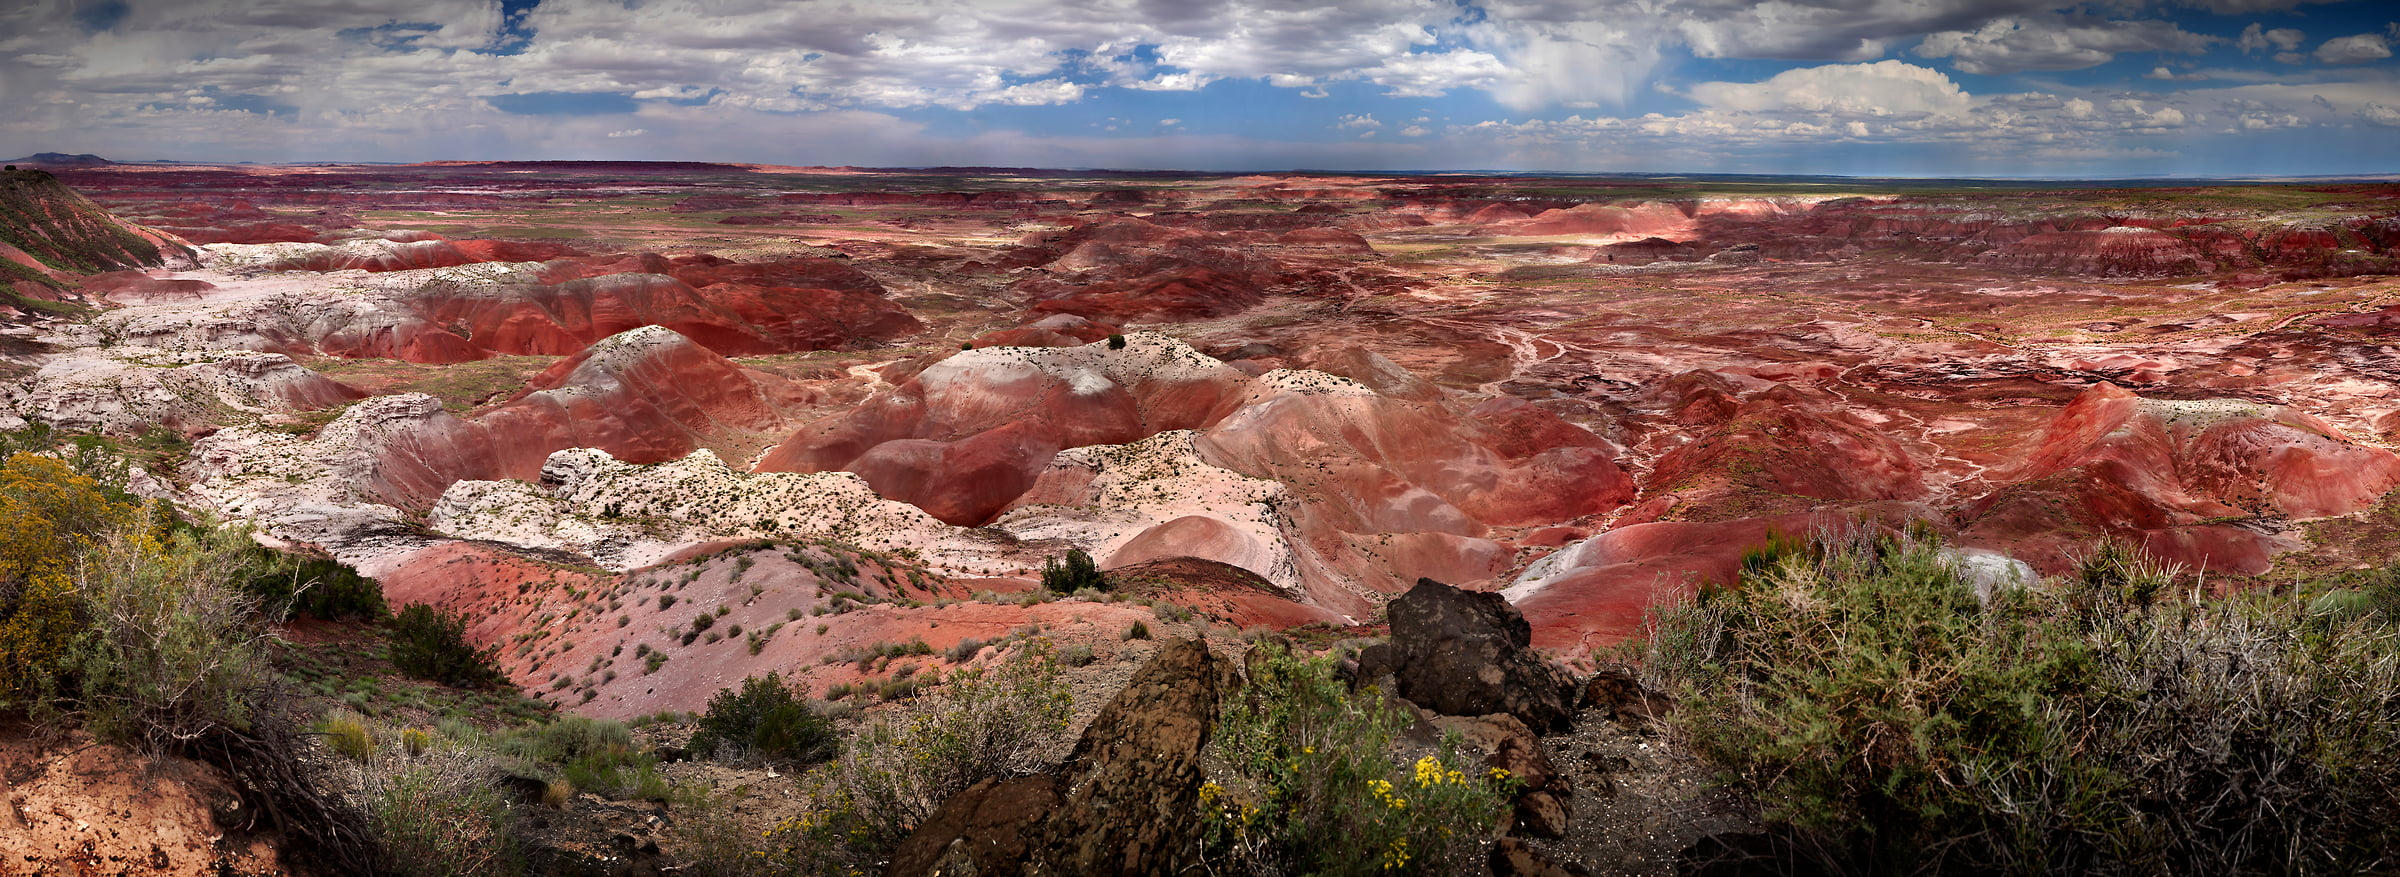 329 megapixels! A very high resolution american landscape photograph; VAST photo created by Phil Crawshay in Petrified Forest National Park, Arizona